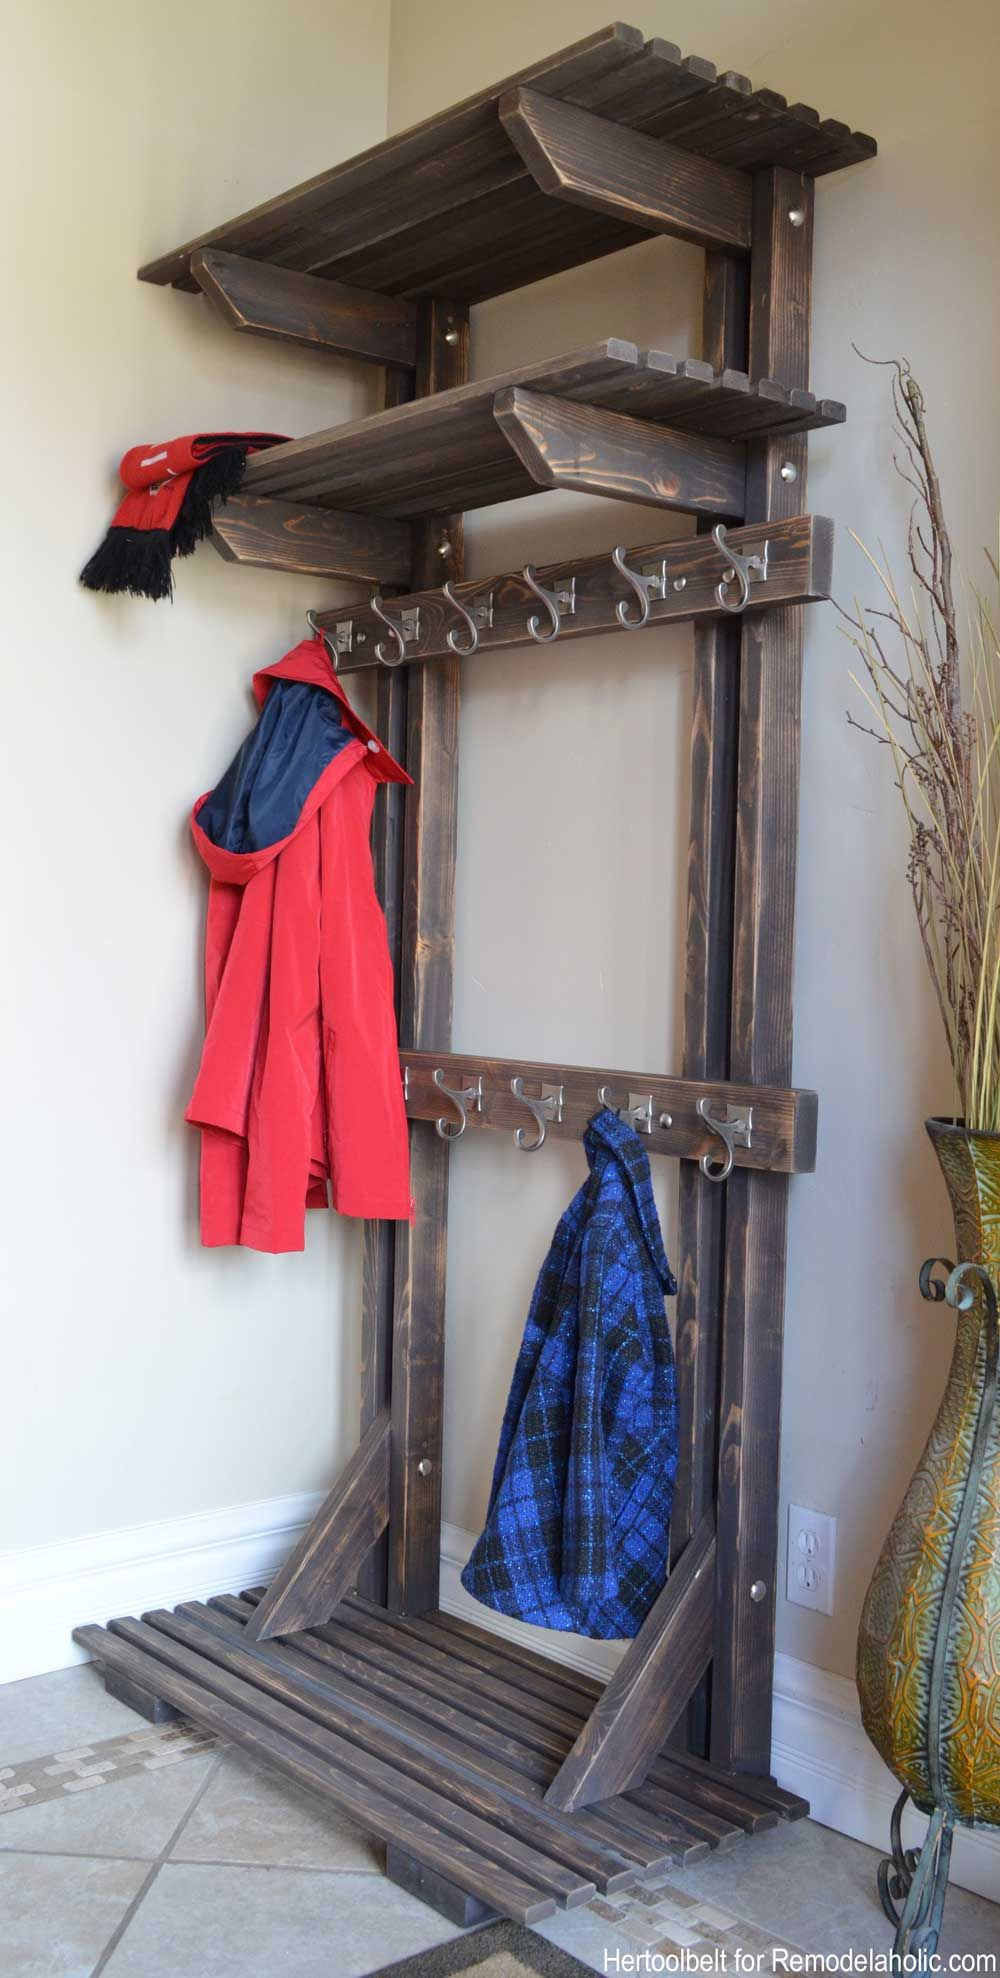 Building Extra Storage For Your Coats Is Easy With This Free Plan